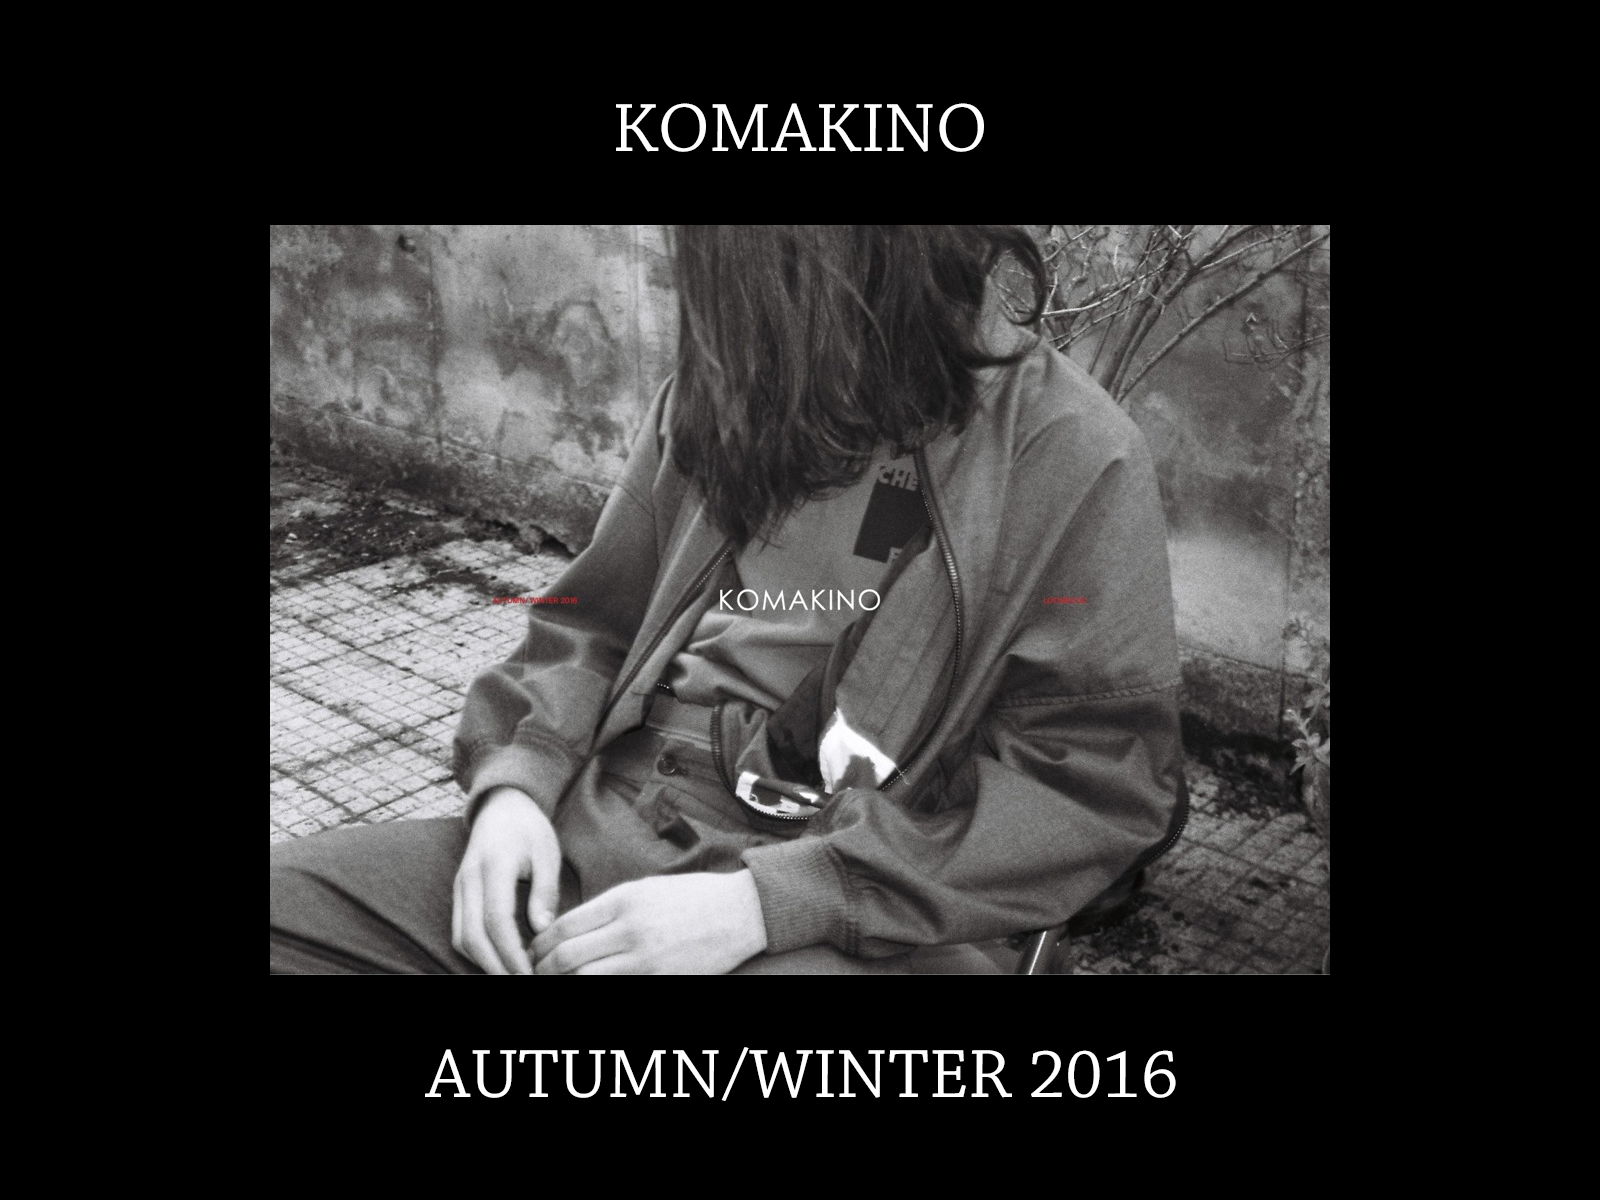 NEW ARRIVAL – KOMAKINO AUTUMN/WINTER 2016